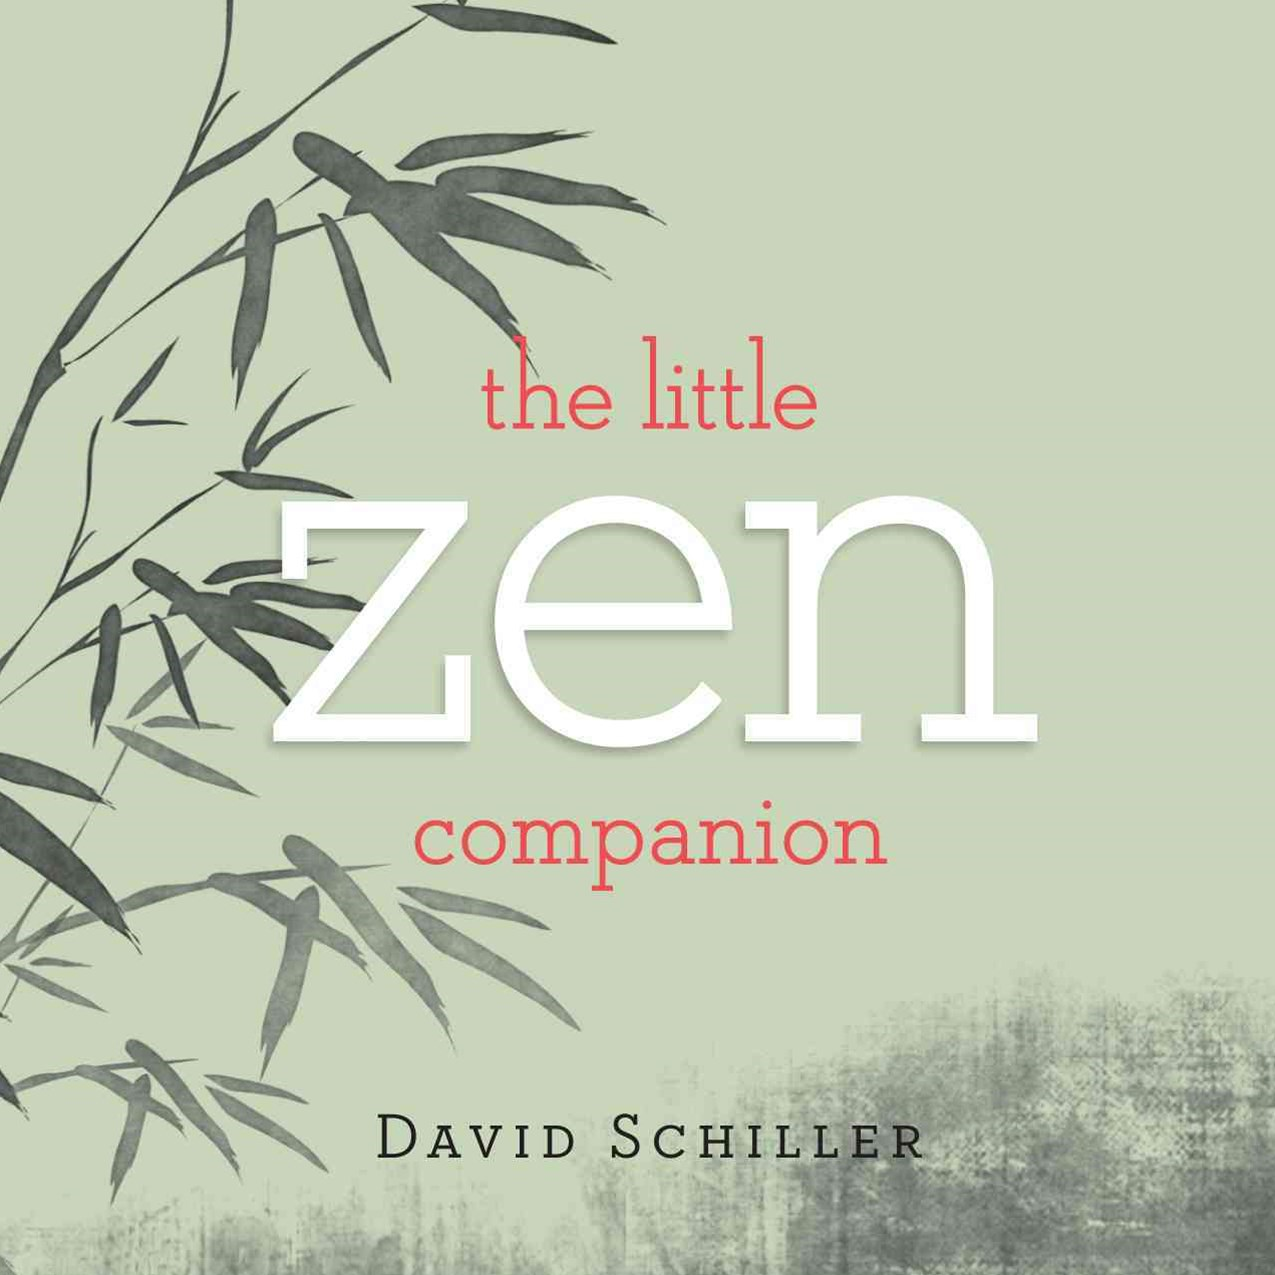 Little Zen Companion